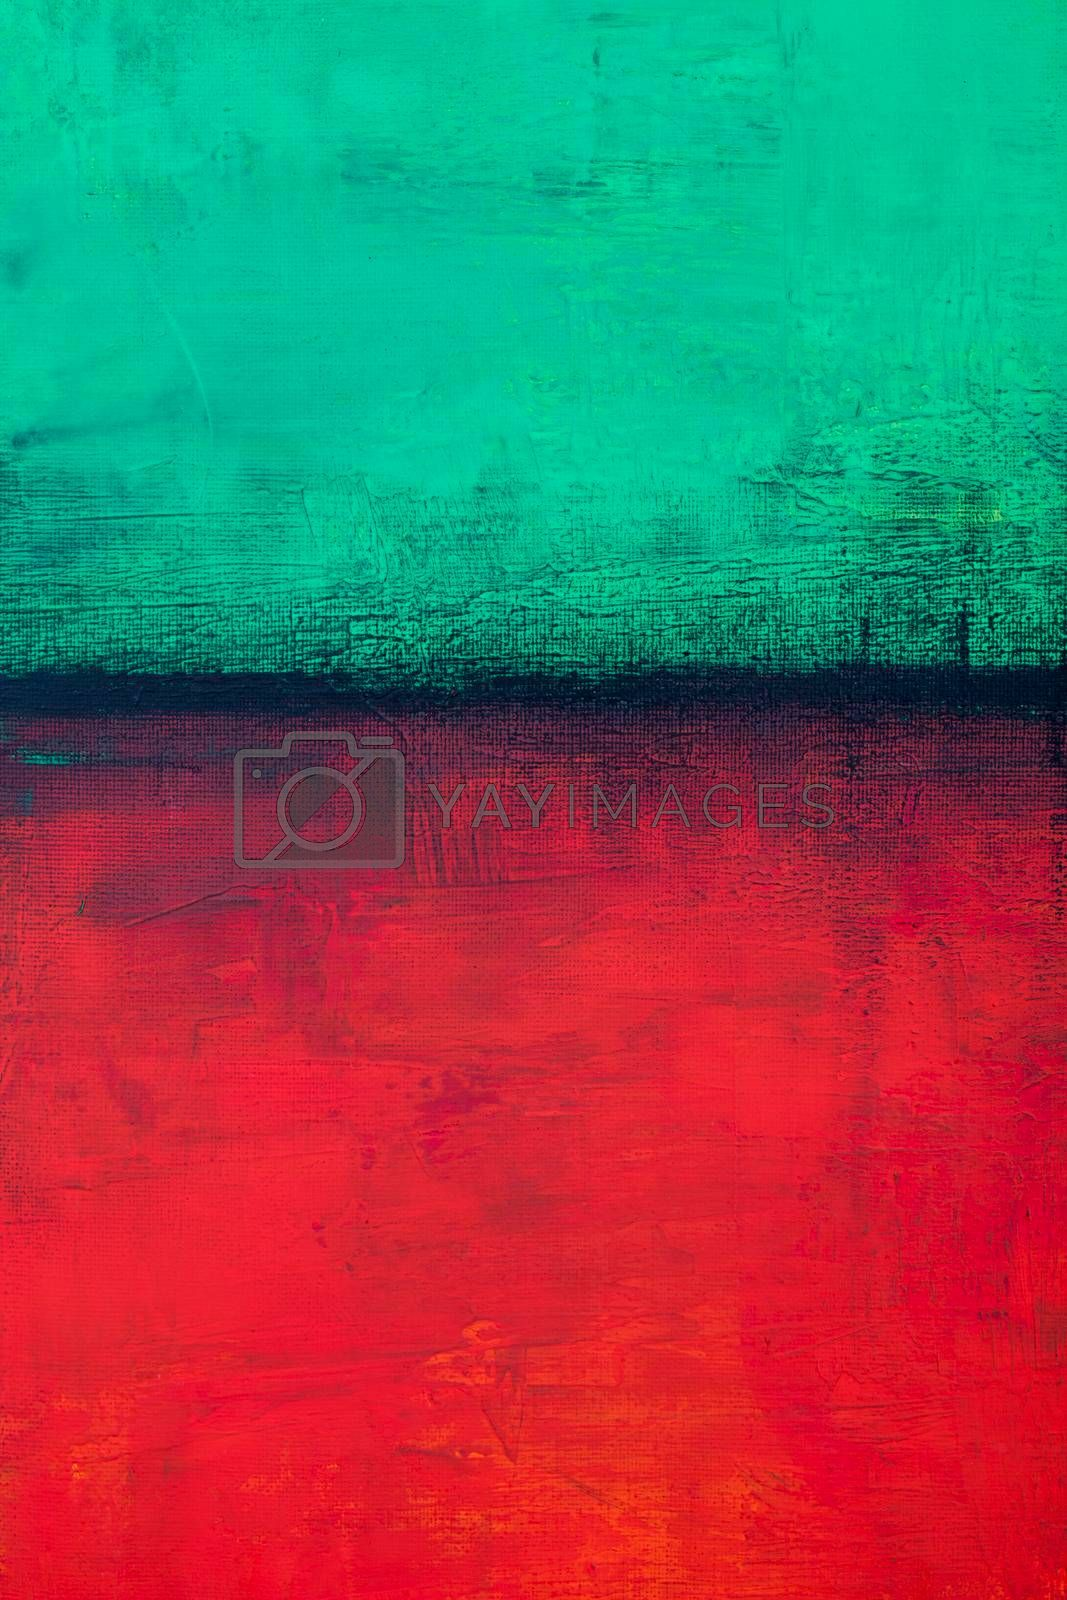 Green and red grunge colored texture background. Decorative painting.